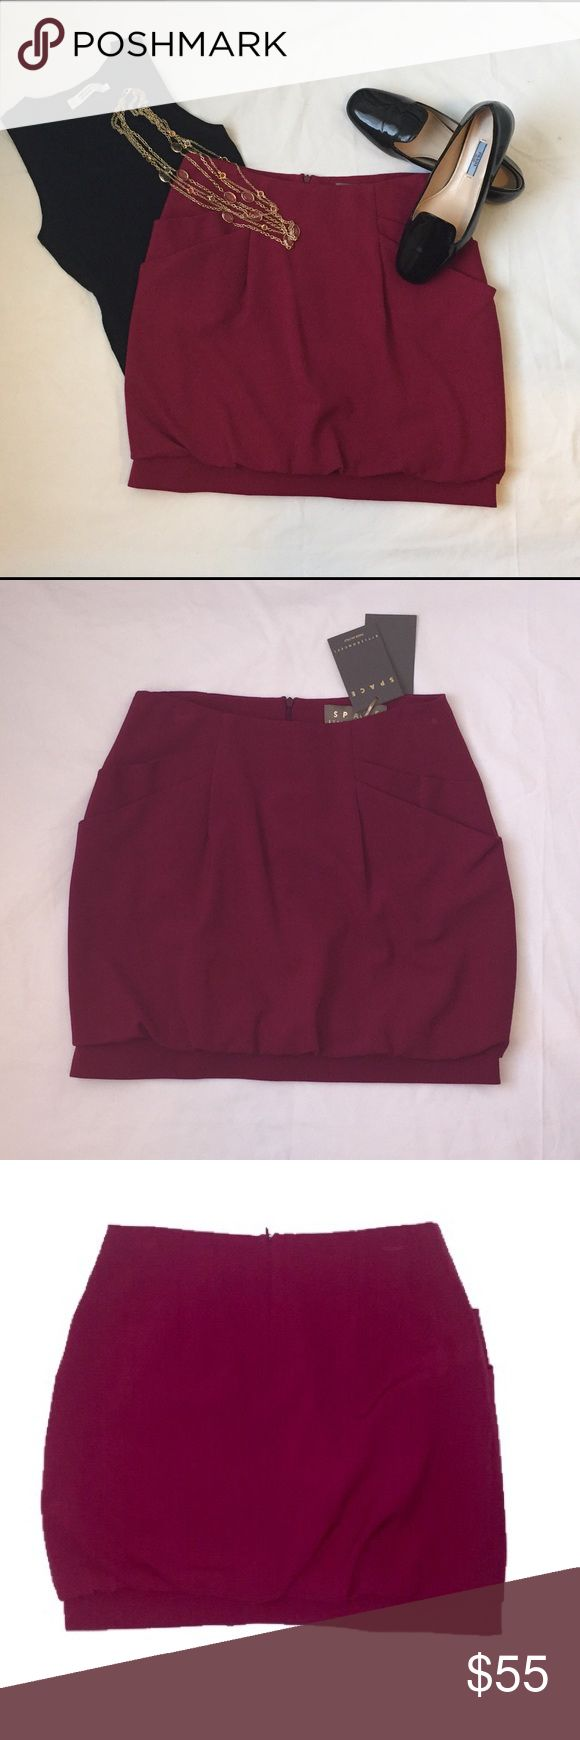 Space Fuchsia Bubble Hem Skirt Made in Italy, Size 44 (US 8). 43% Virgin wool, 52% Polyester, 5% Lycra. Above the knee; 4 front pockets. Never worn, new with tags. Bubble hem detail looks especially lovely against black matte tights or golden legs. Prada loafers sold separately, all other items not available. Space Skirts